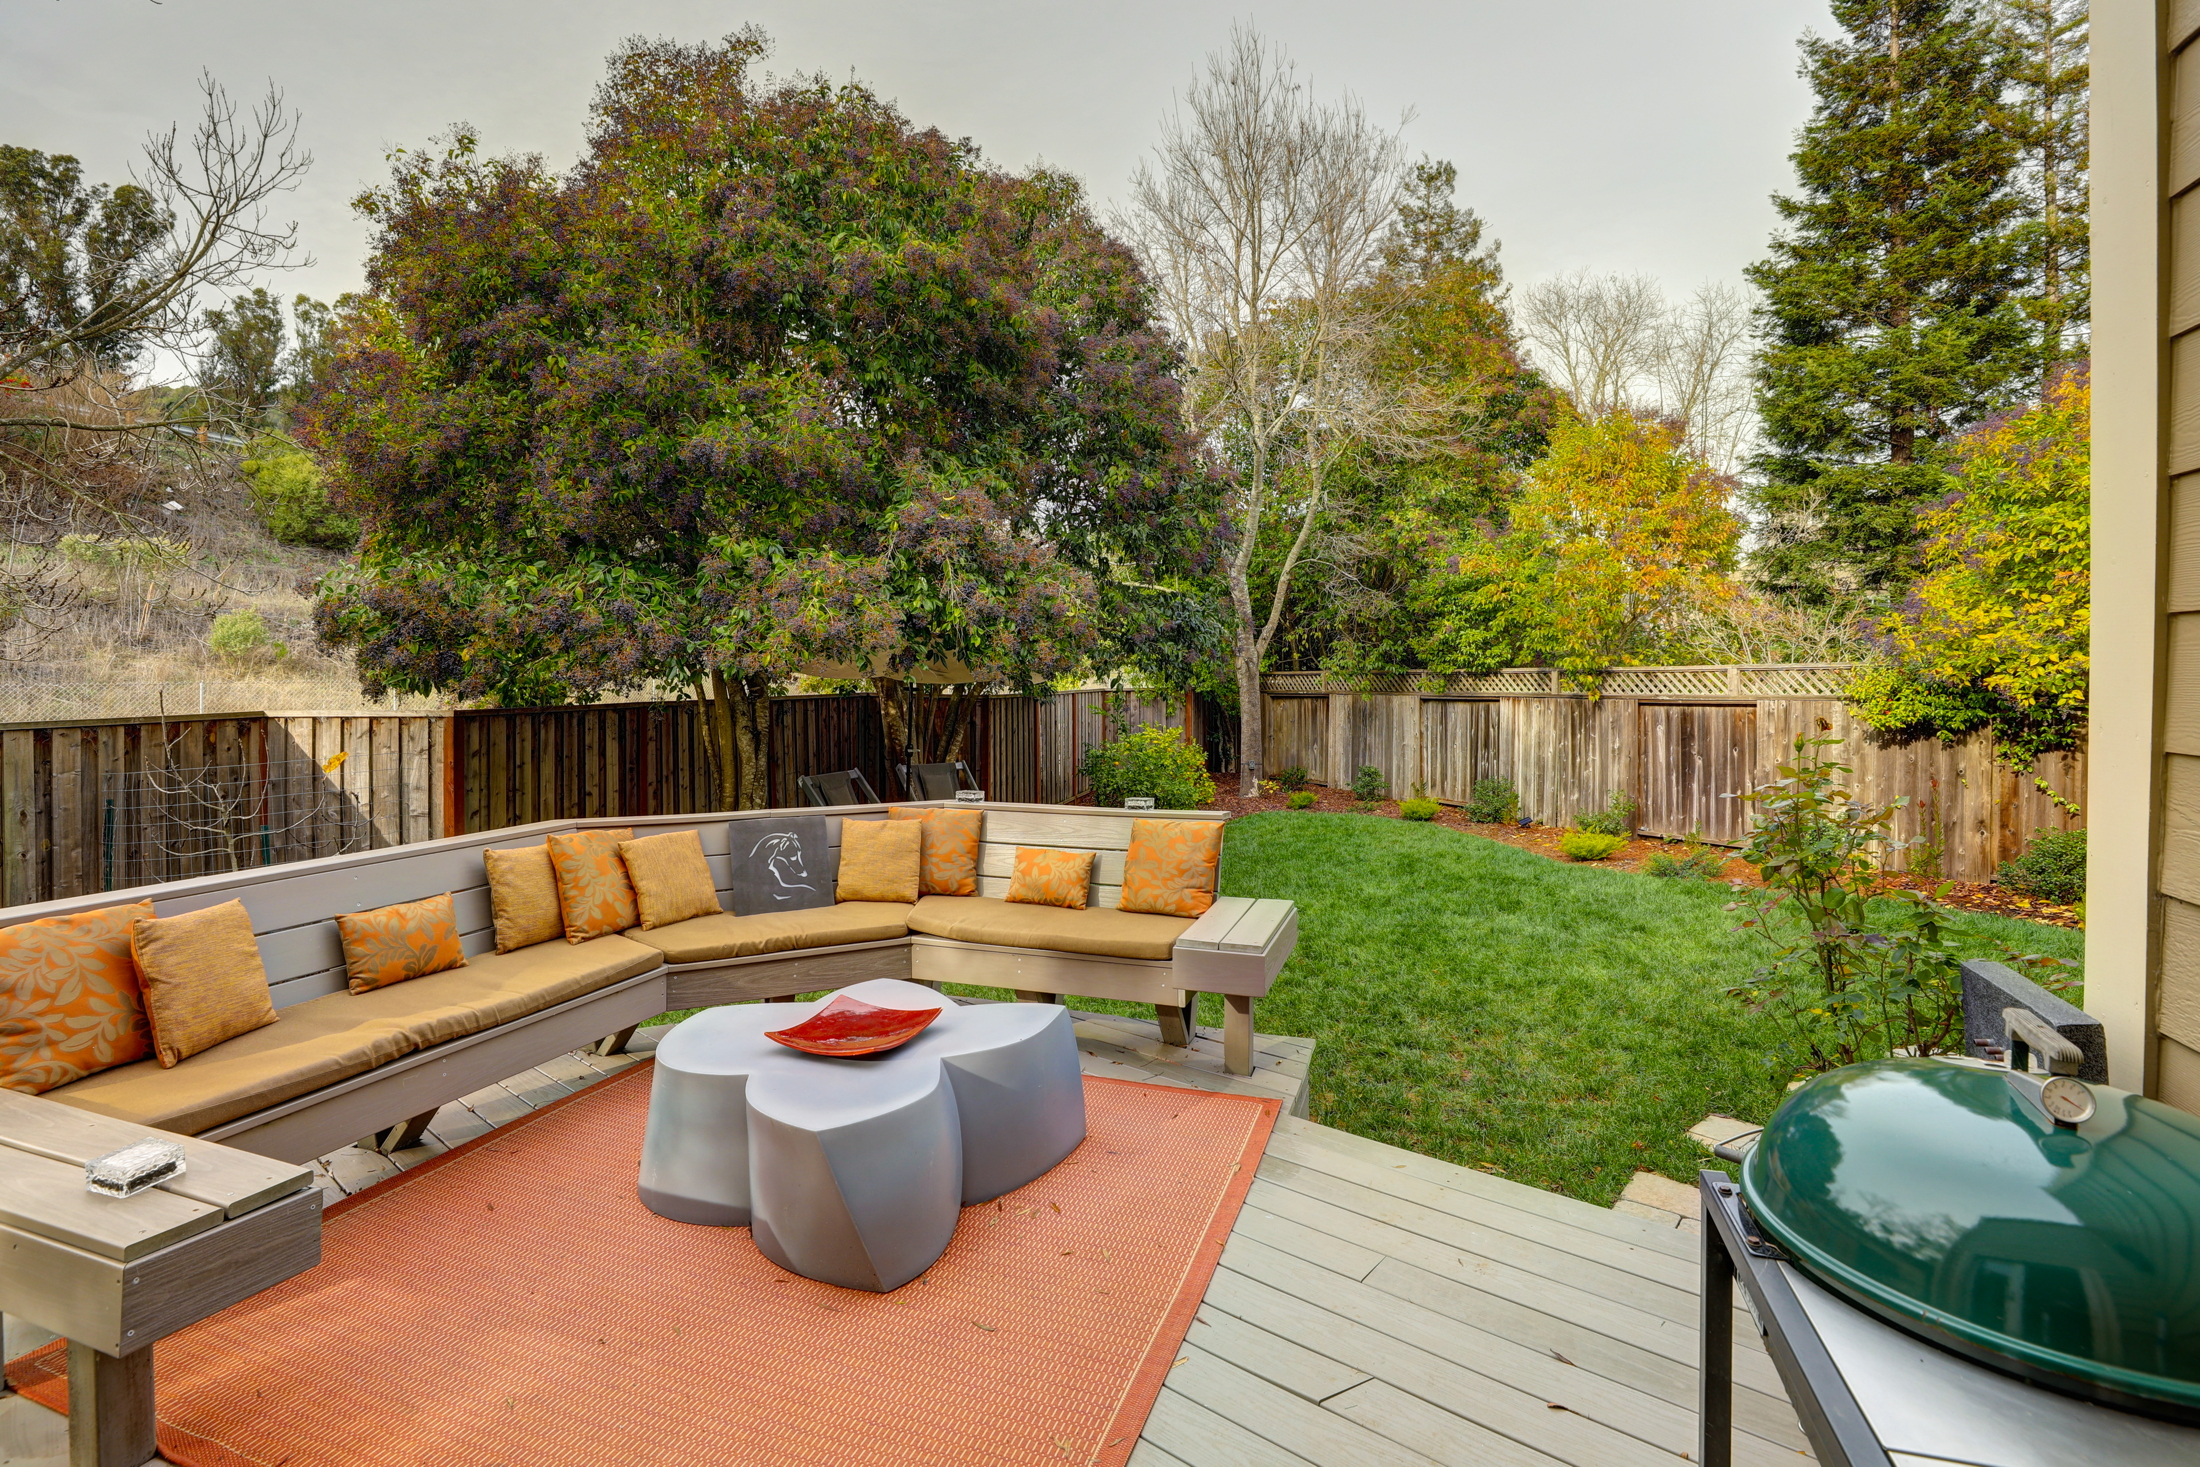 8Parkview 22 - Allie Fornesi at Own Marin with Compass - Corte Madera Realtor.jpg